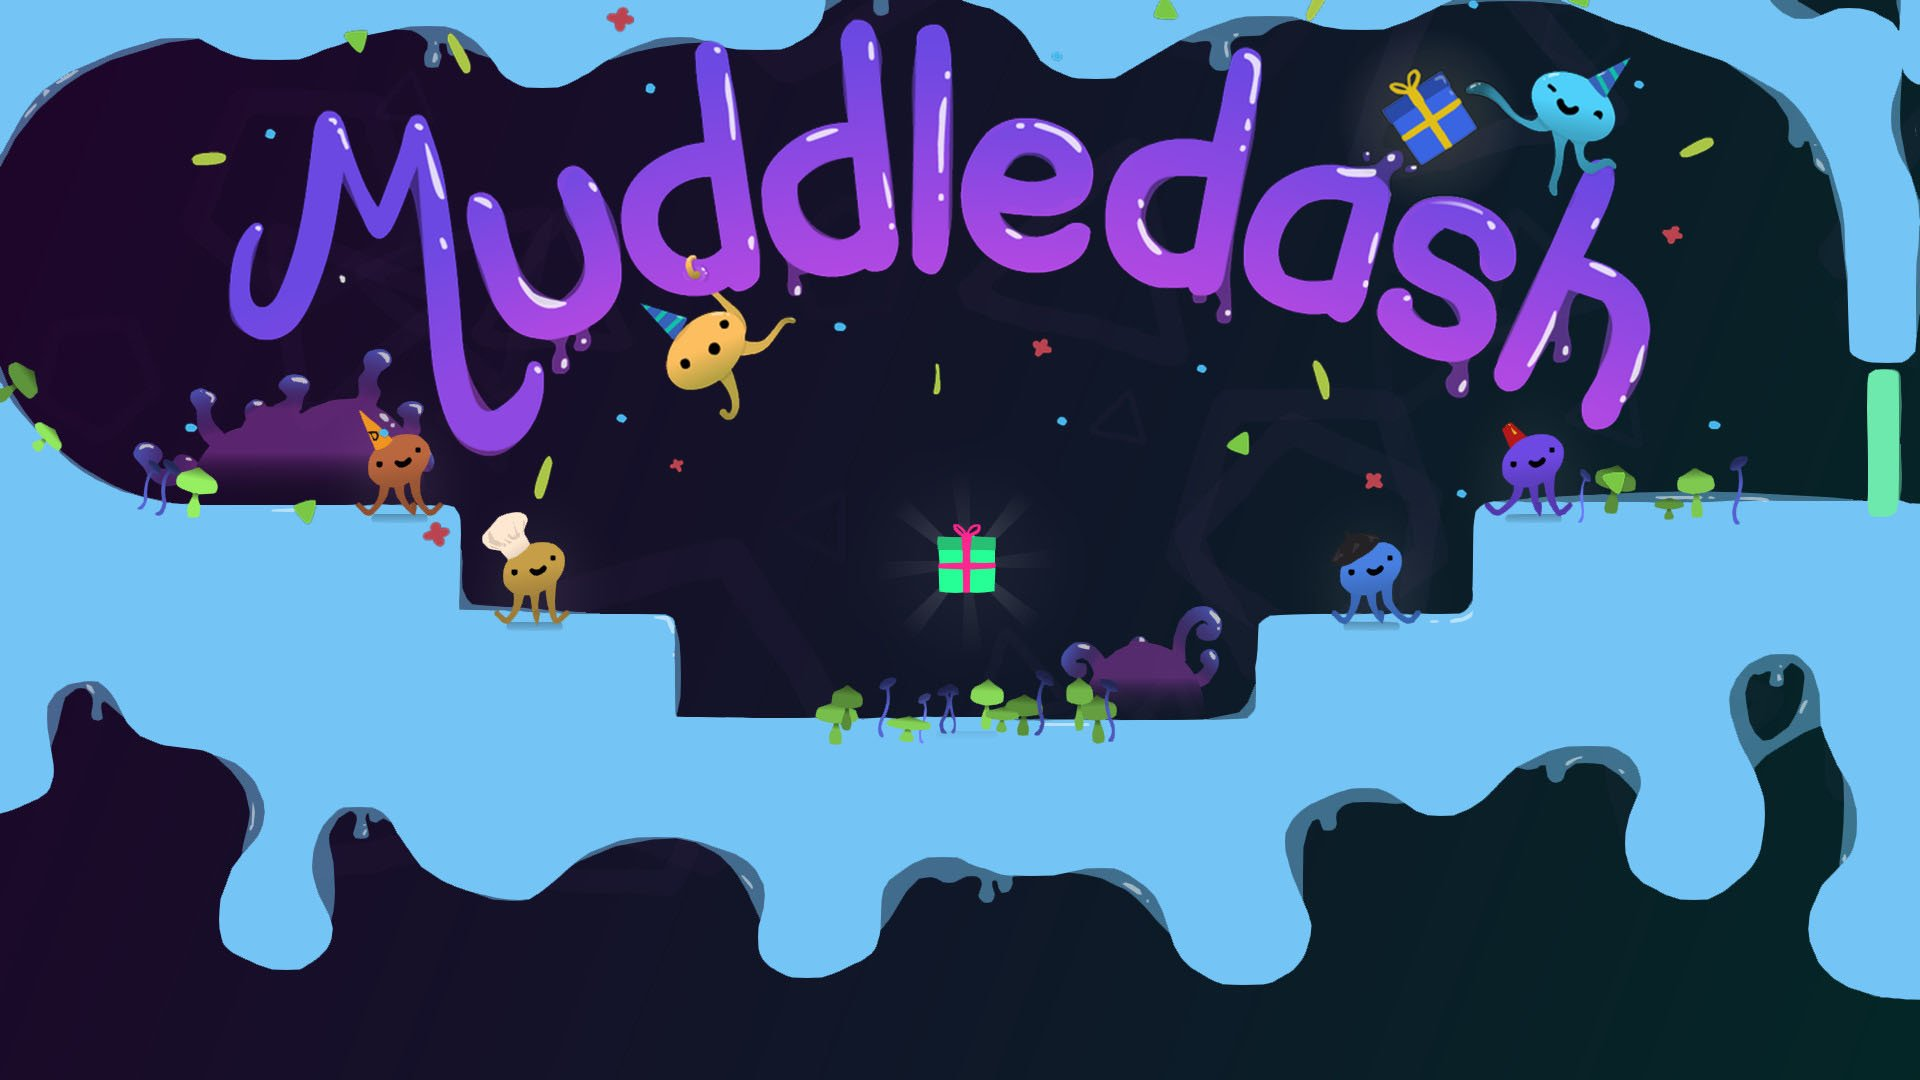 Muddledash (Nintendo Switch) Video Review